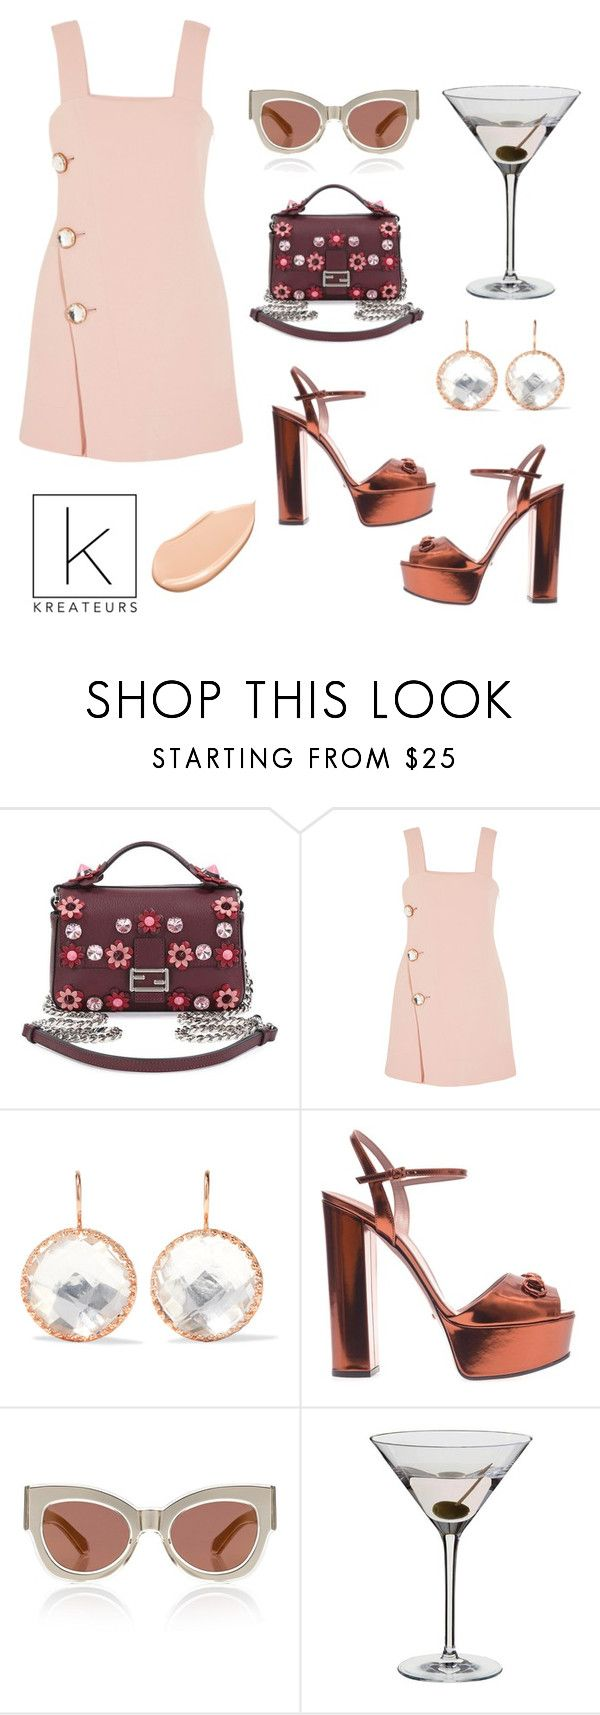 """Pink"" by emmaomeradzic ❤ liked on Polyvore featuring Fendi, Marni, Larkspur & Hawk, Gucci, Karen Walker, Dartington Crystal and Shiseido"